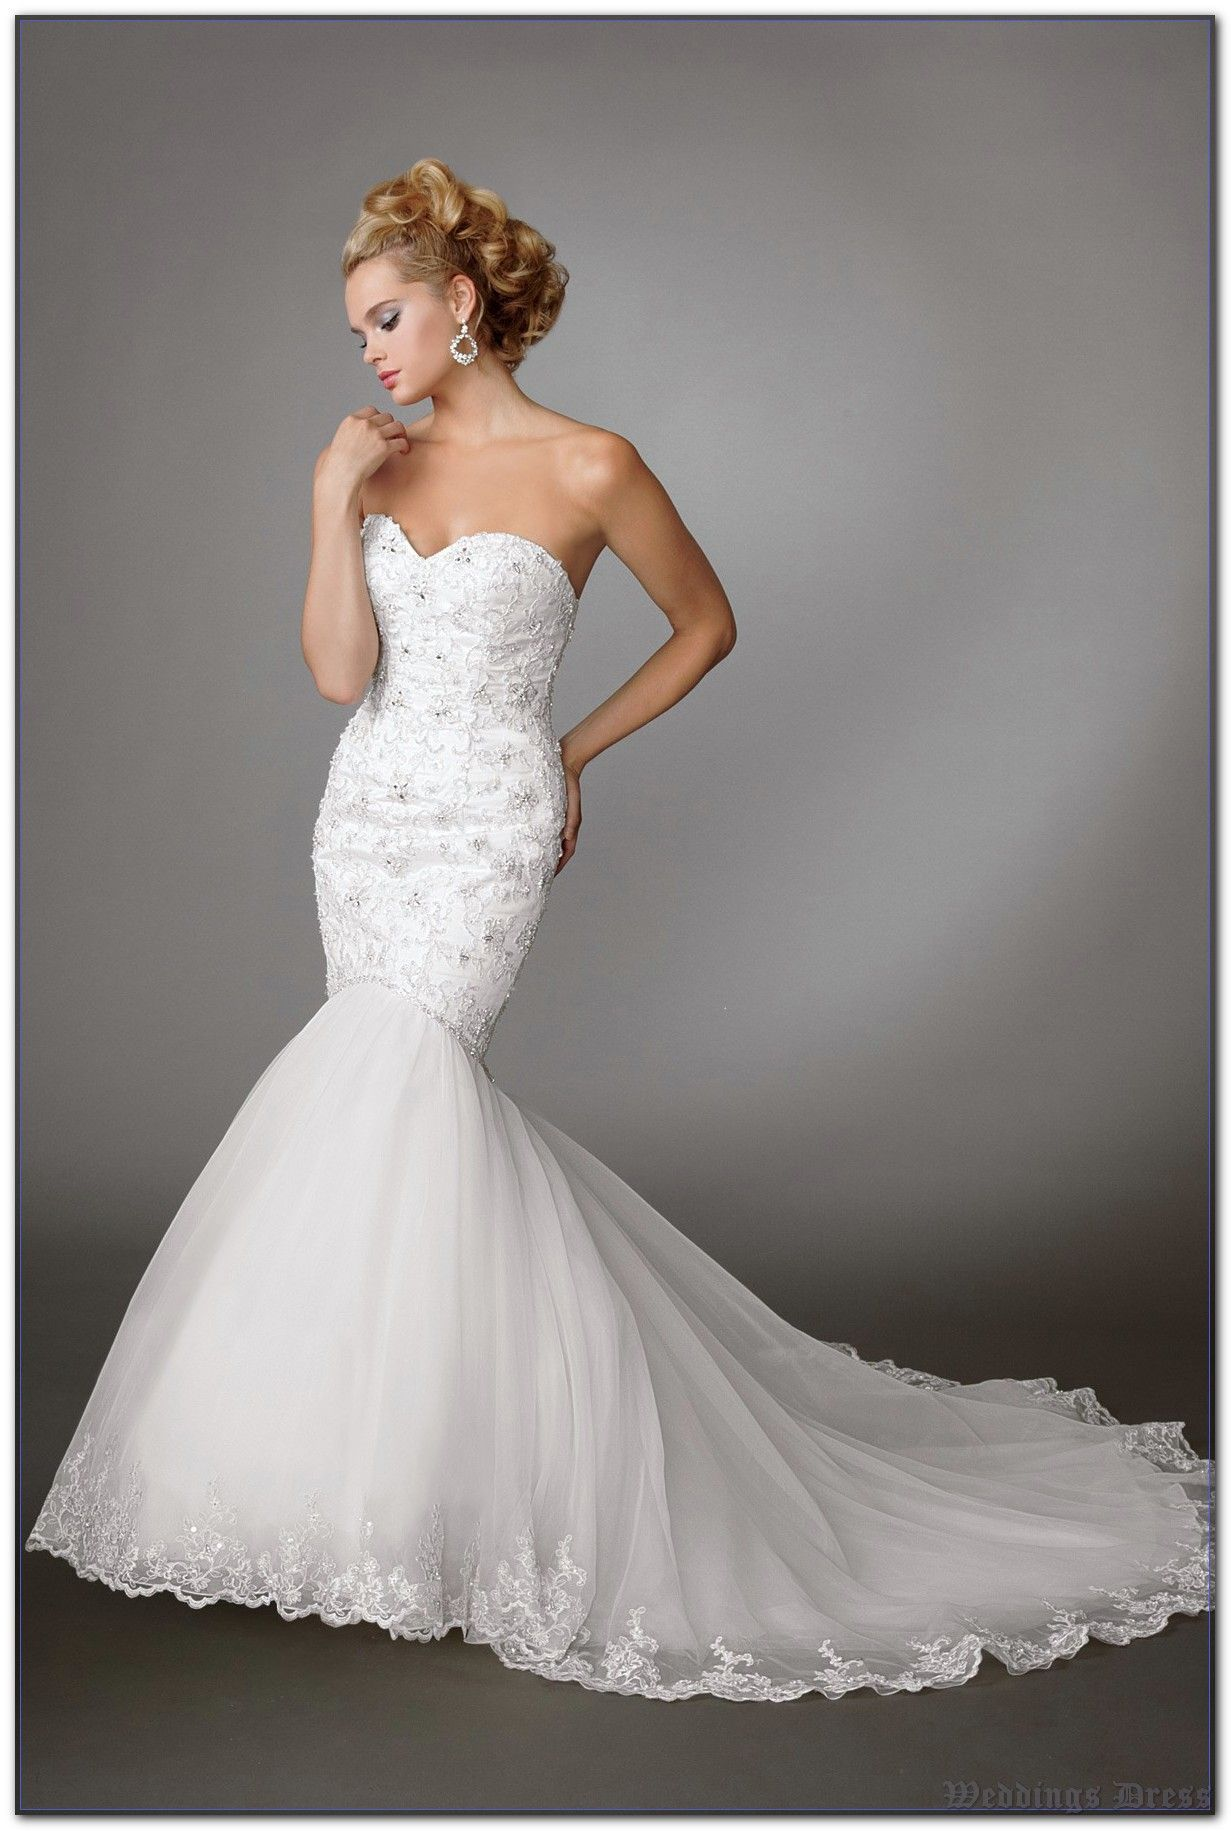 The Quickest & Easiest Way To Weddings Dress